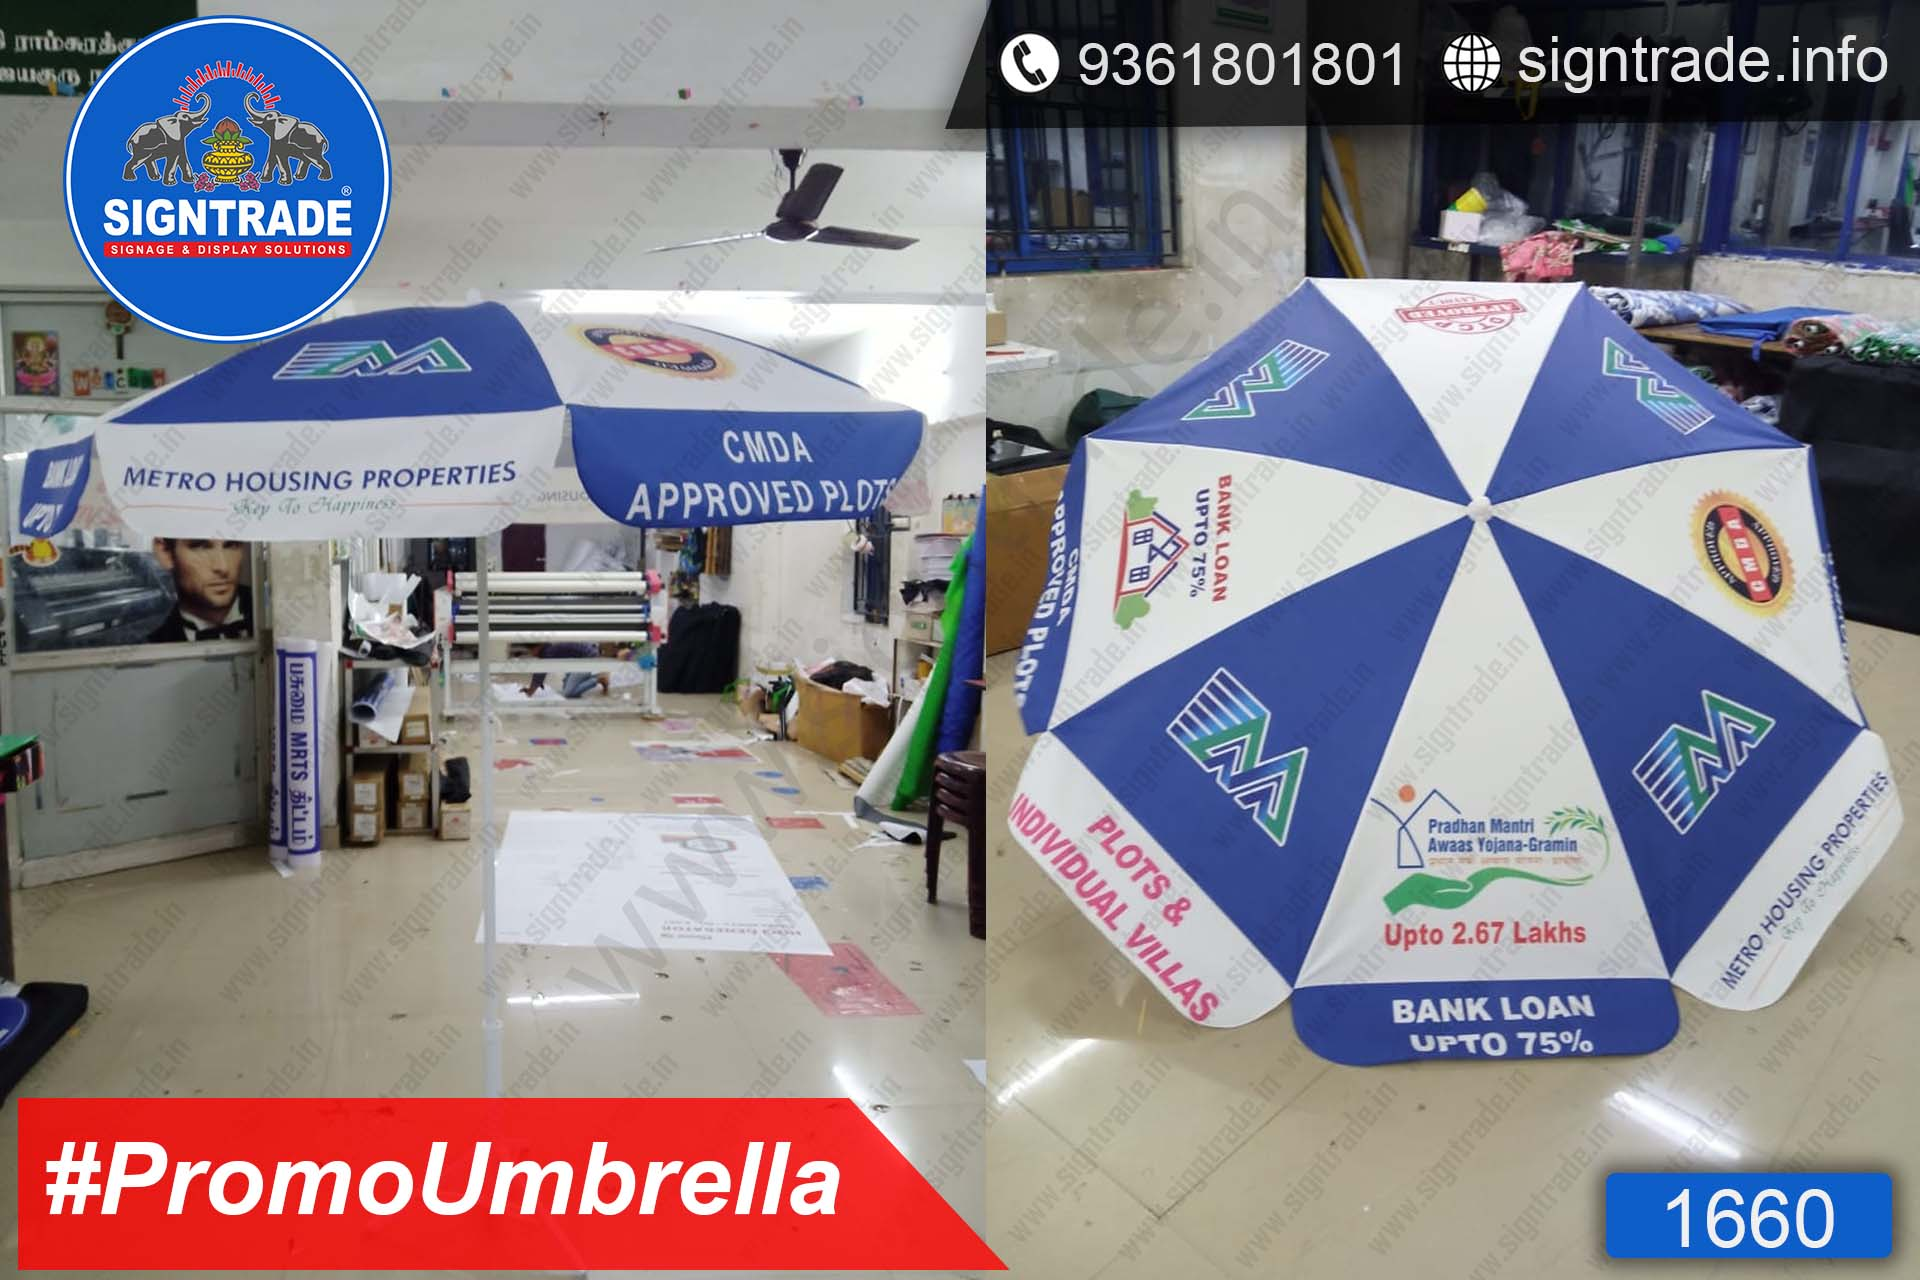 Metro Housing Properties, Chennai - SIGNTRADE - Promotional Umbrella Manufactures in Chennai